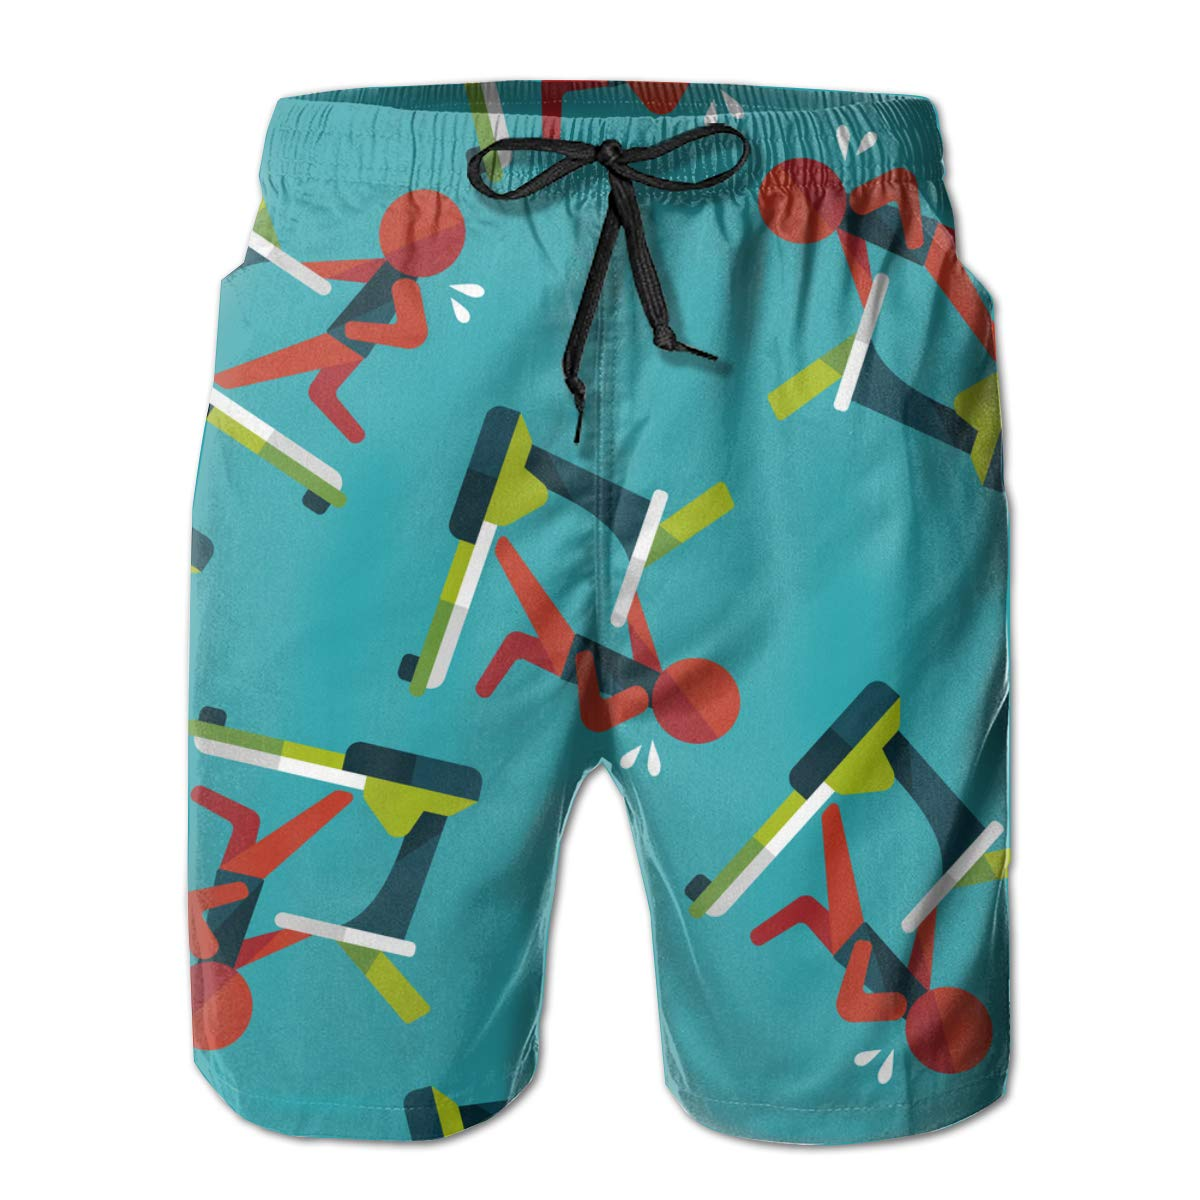 Treadmill Mens Summer Swim Trunks 3D Graphic Quick Dry Funny Beach Board Shorts with Mesh Lining